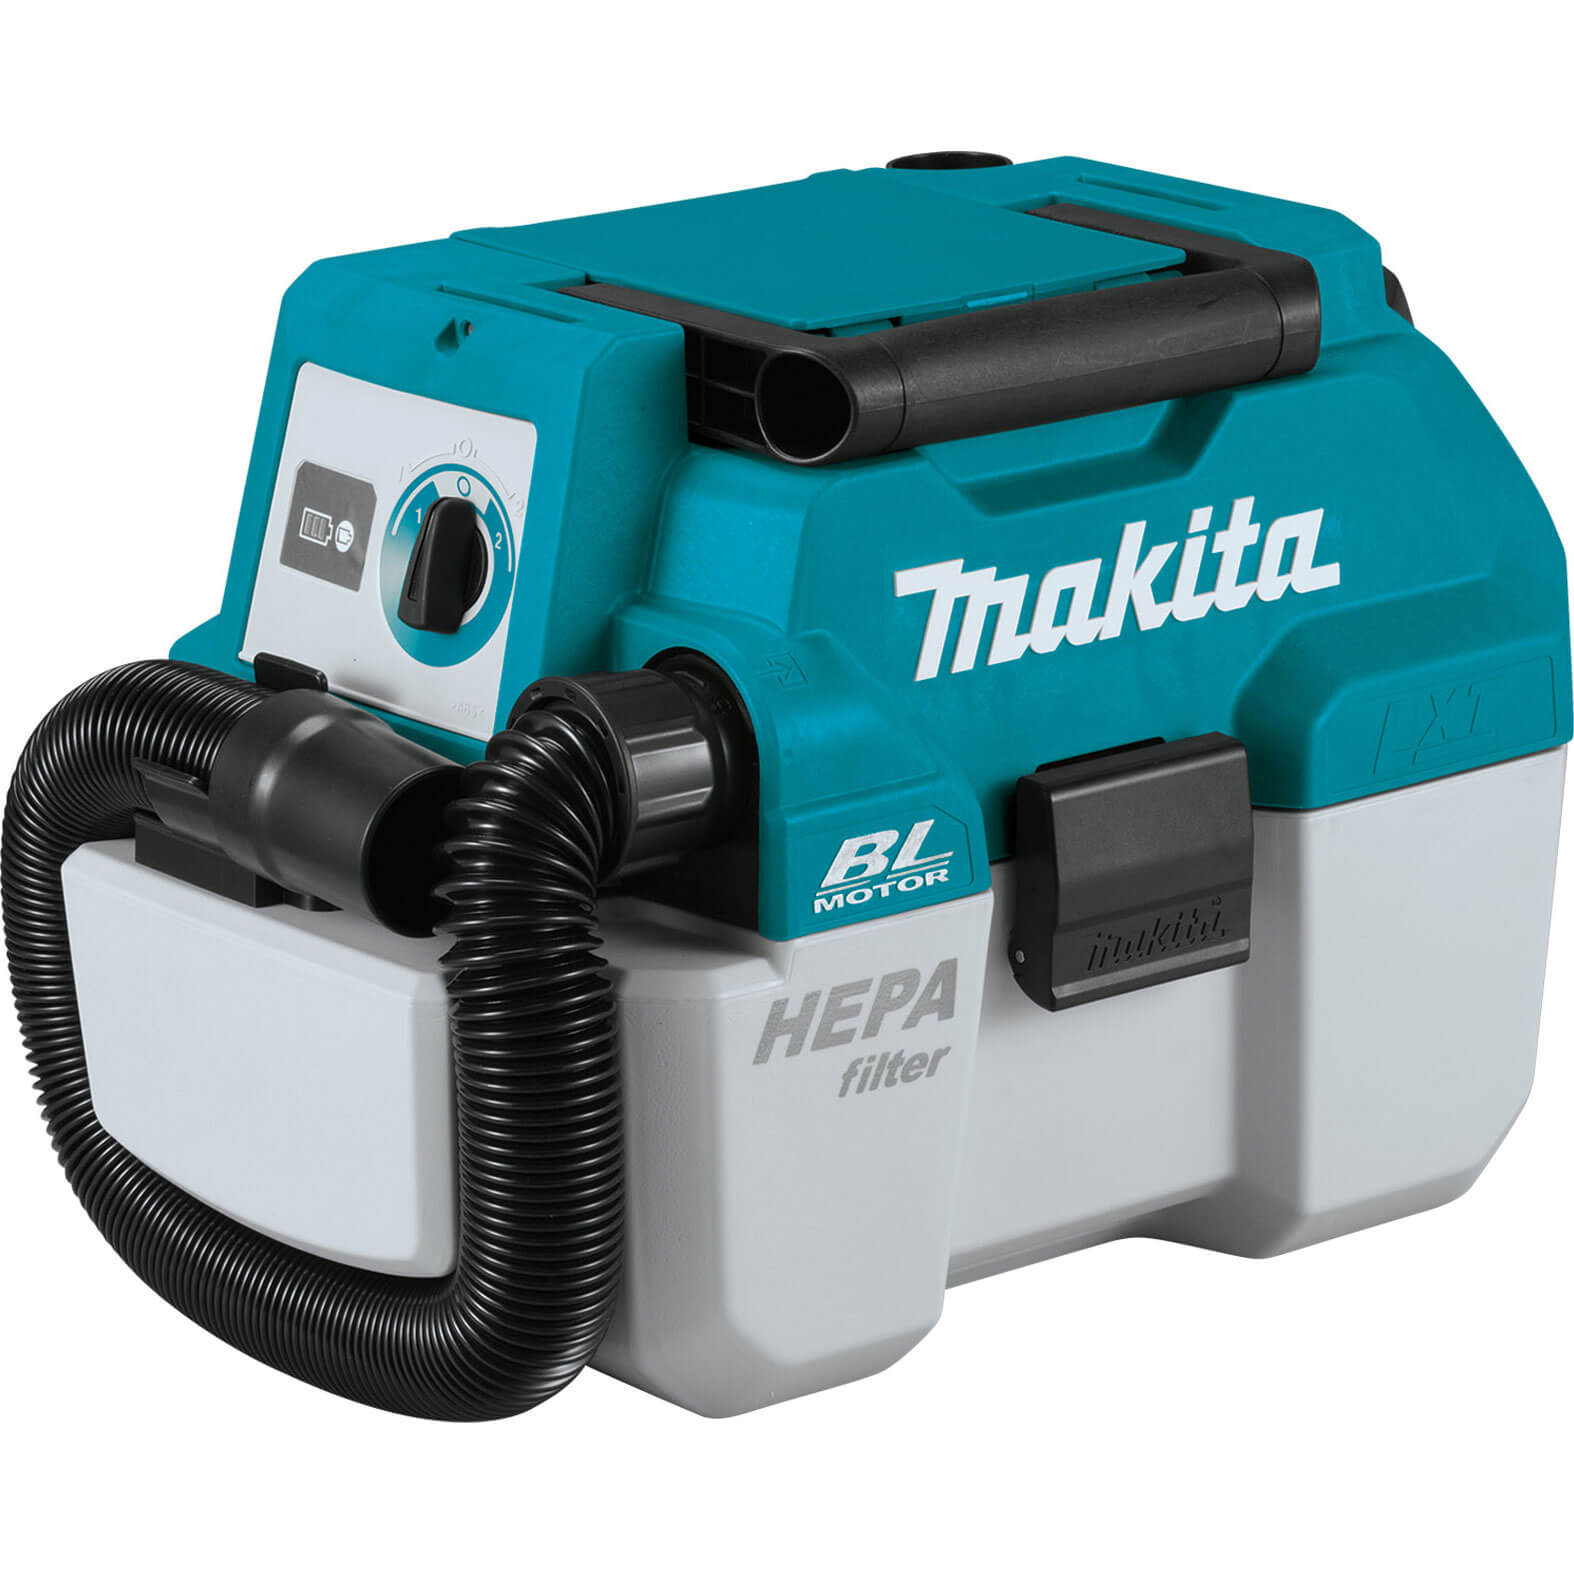 Makita DVC750L18v LXT Cordless Brushless Vacuum Cleaner No Batteries No Charger No Case